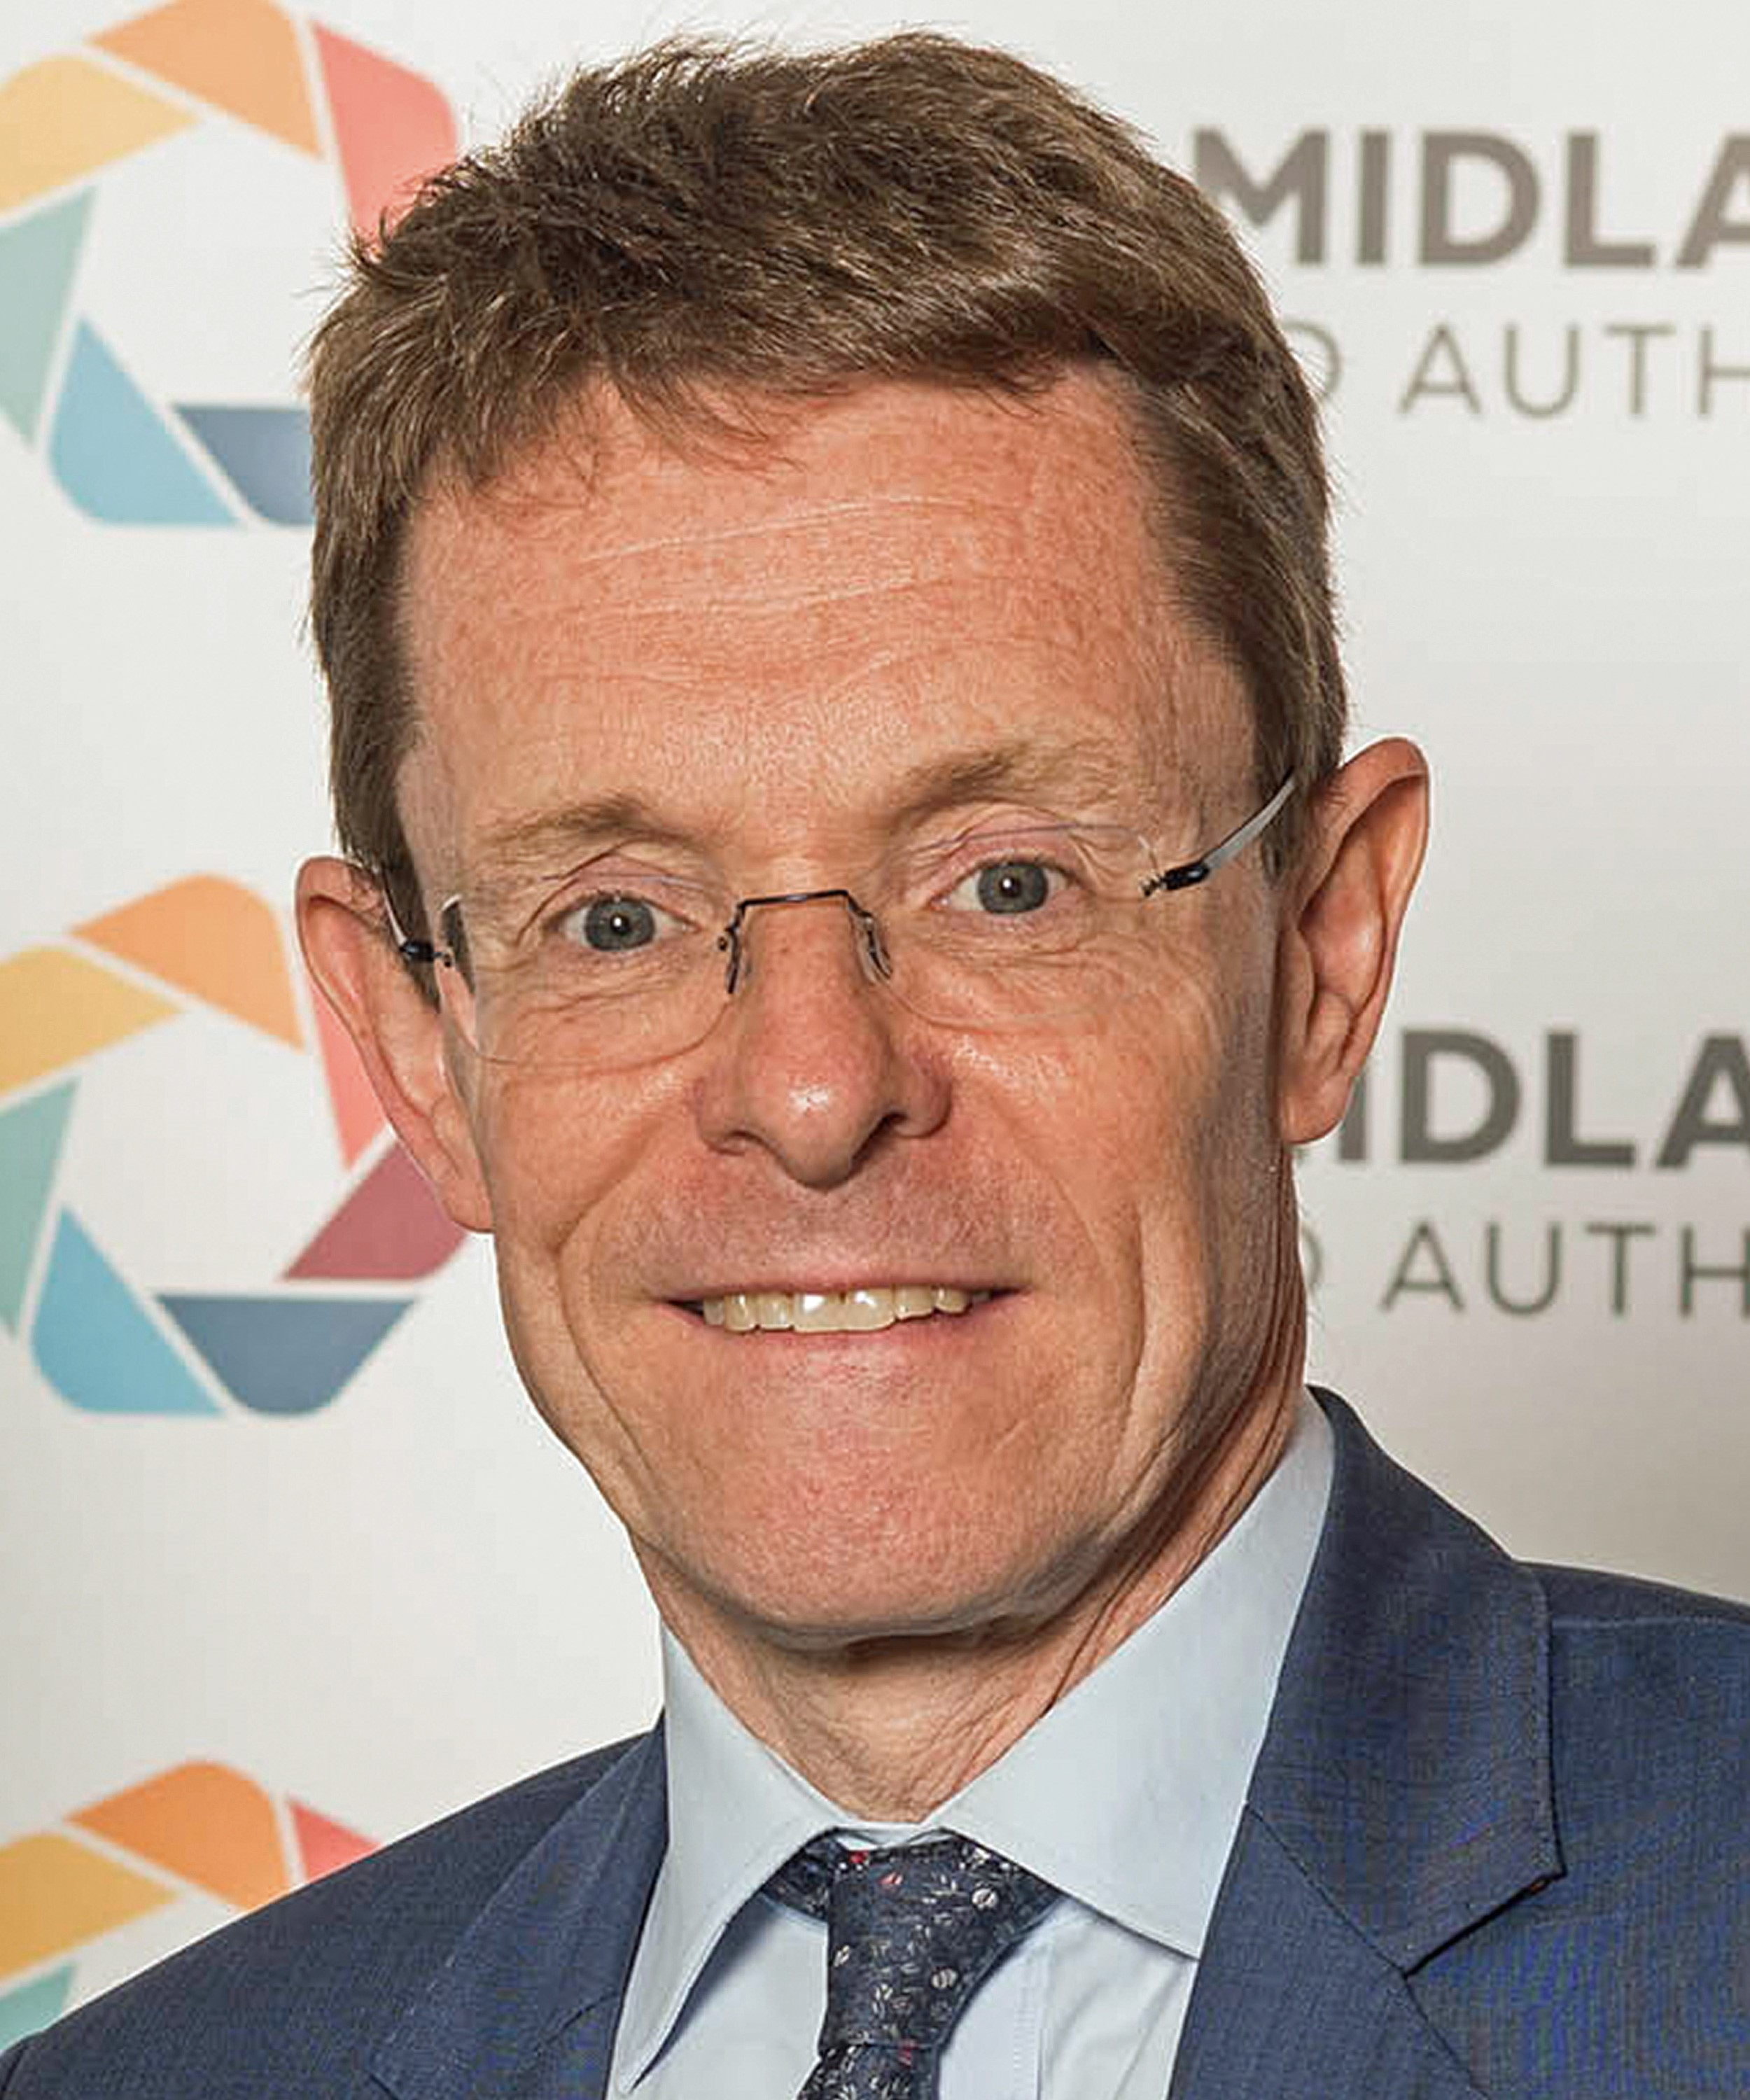 West Midlands Mayor Andy Street to take questions over proposed WMCA budget